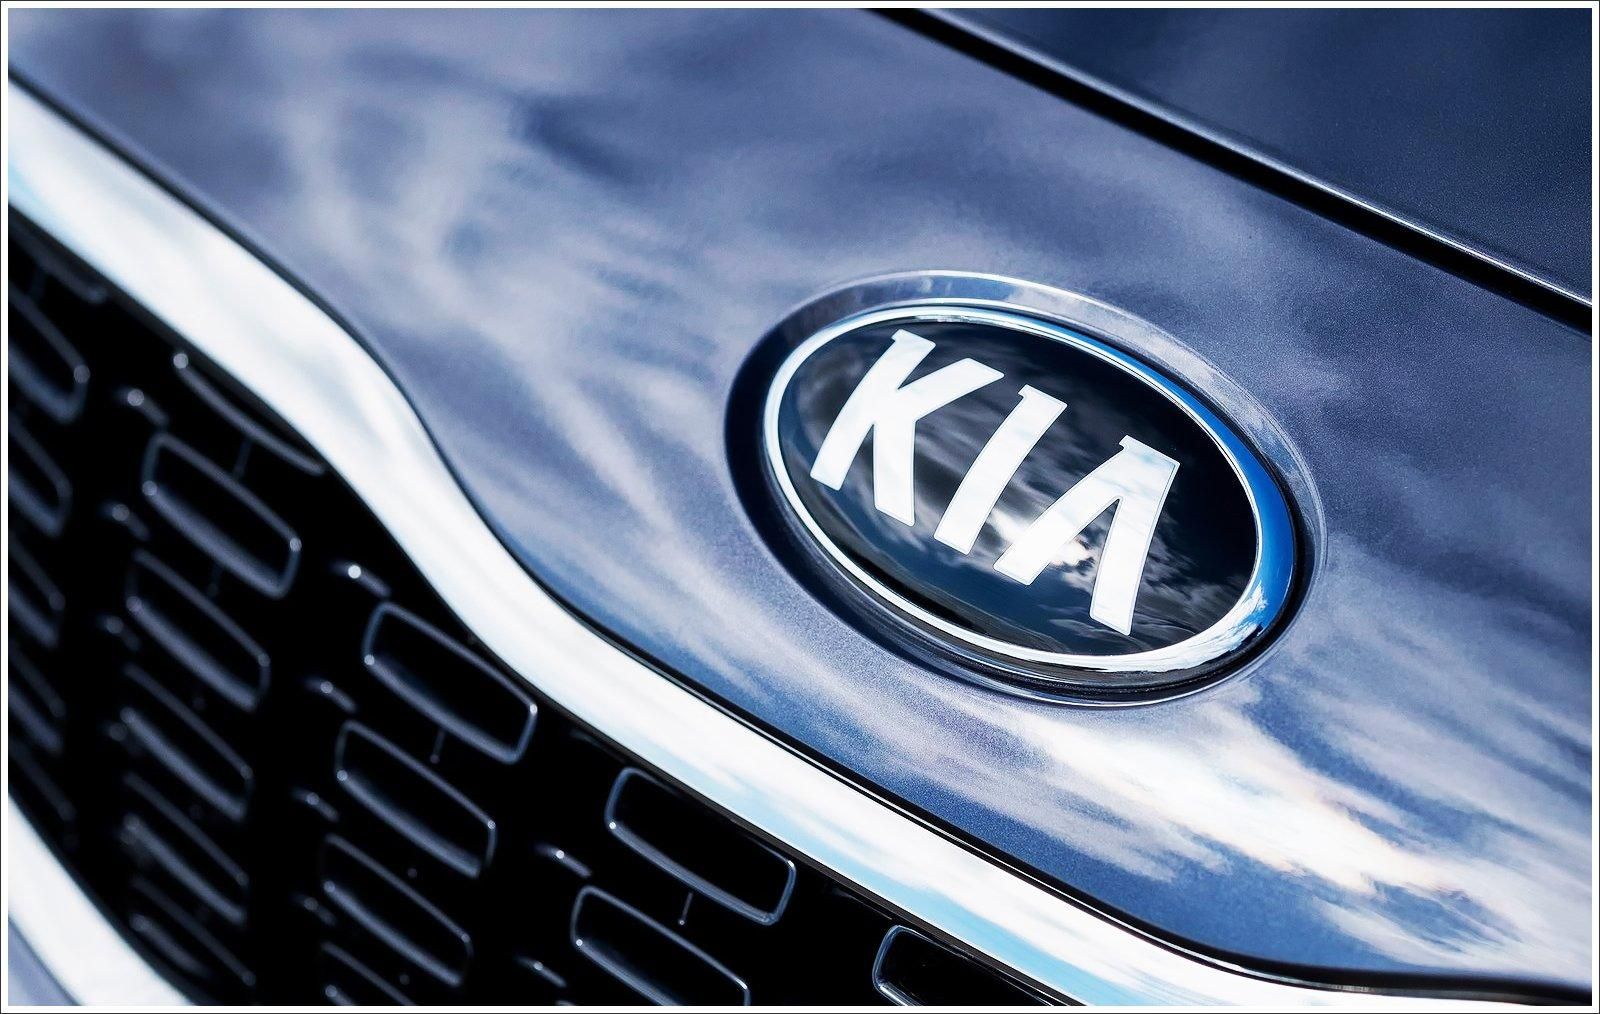 Kia Logo- what is the history of the logo?